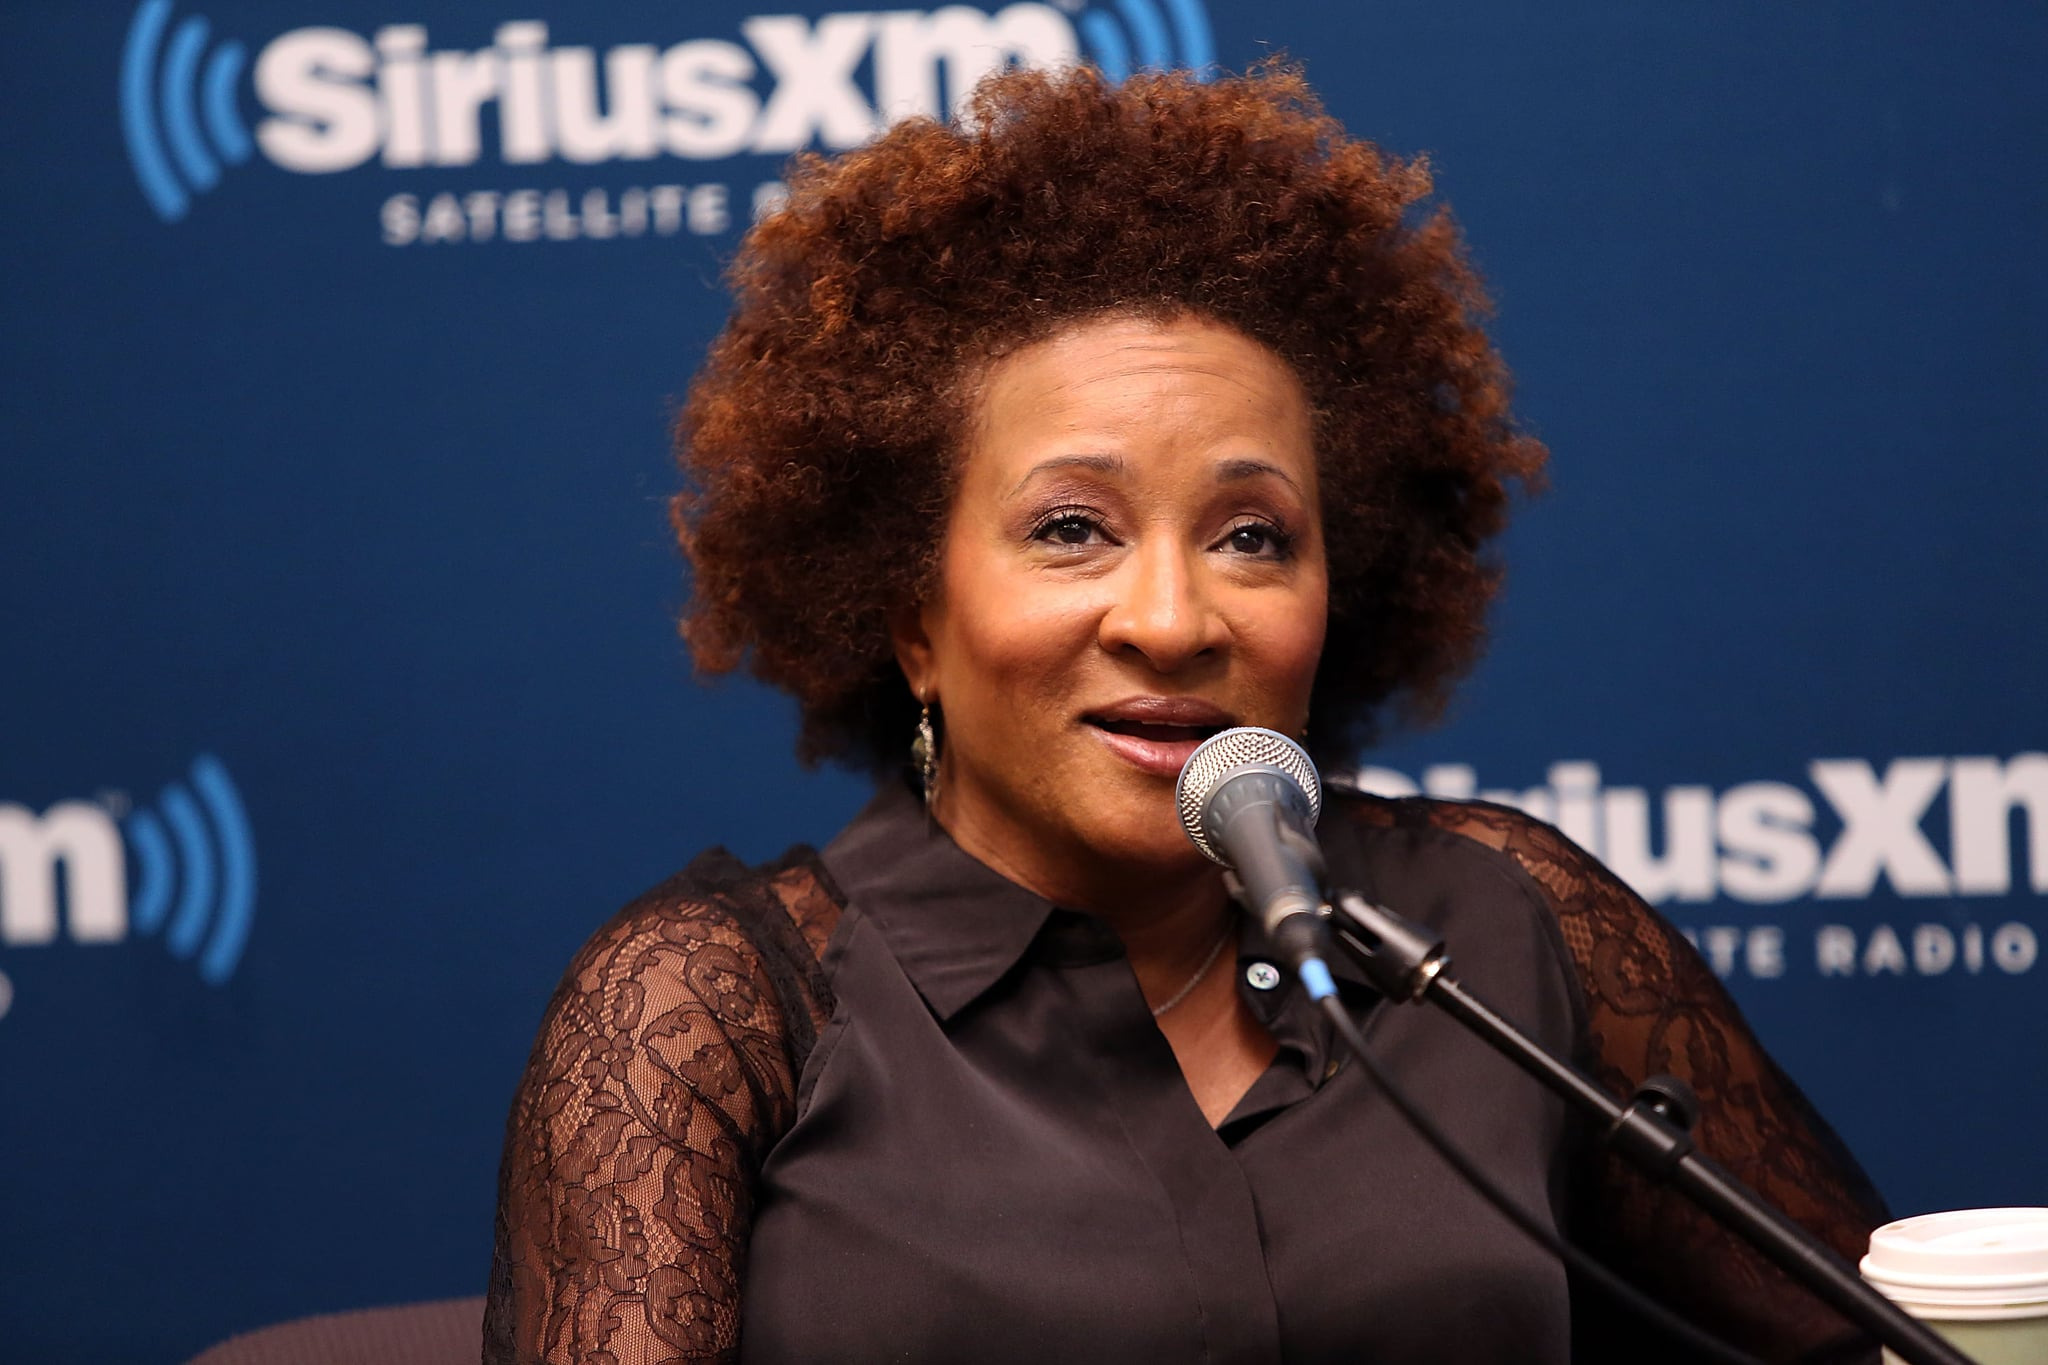 NEW YORK, NY - JANUARY 08:  Wanda Sykes visits Oprah Radio 'SiriusXM Leading Ladies' at SiriusXM Studios on January 8, 2014 in New York City.  (Photo by Robin Marchant/Getty Images)